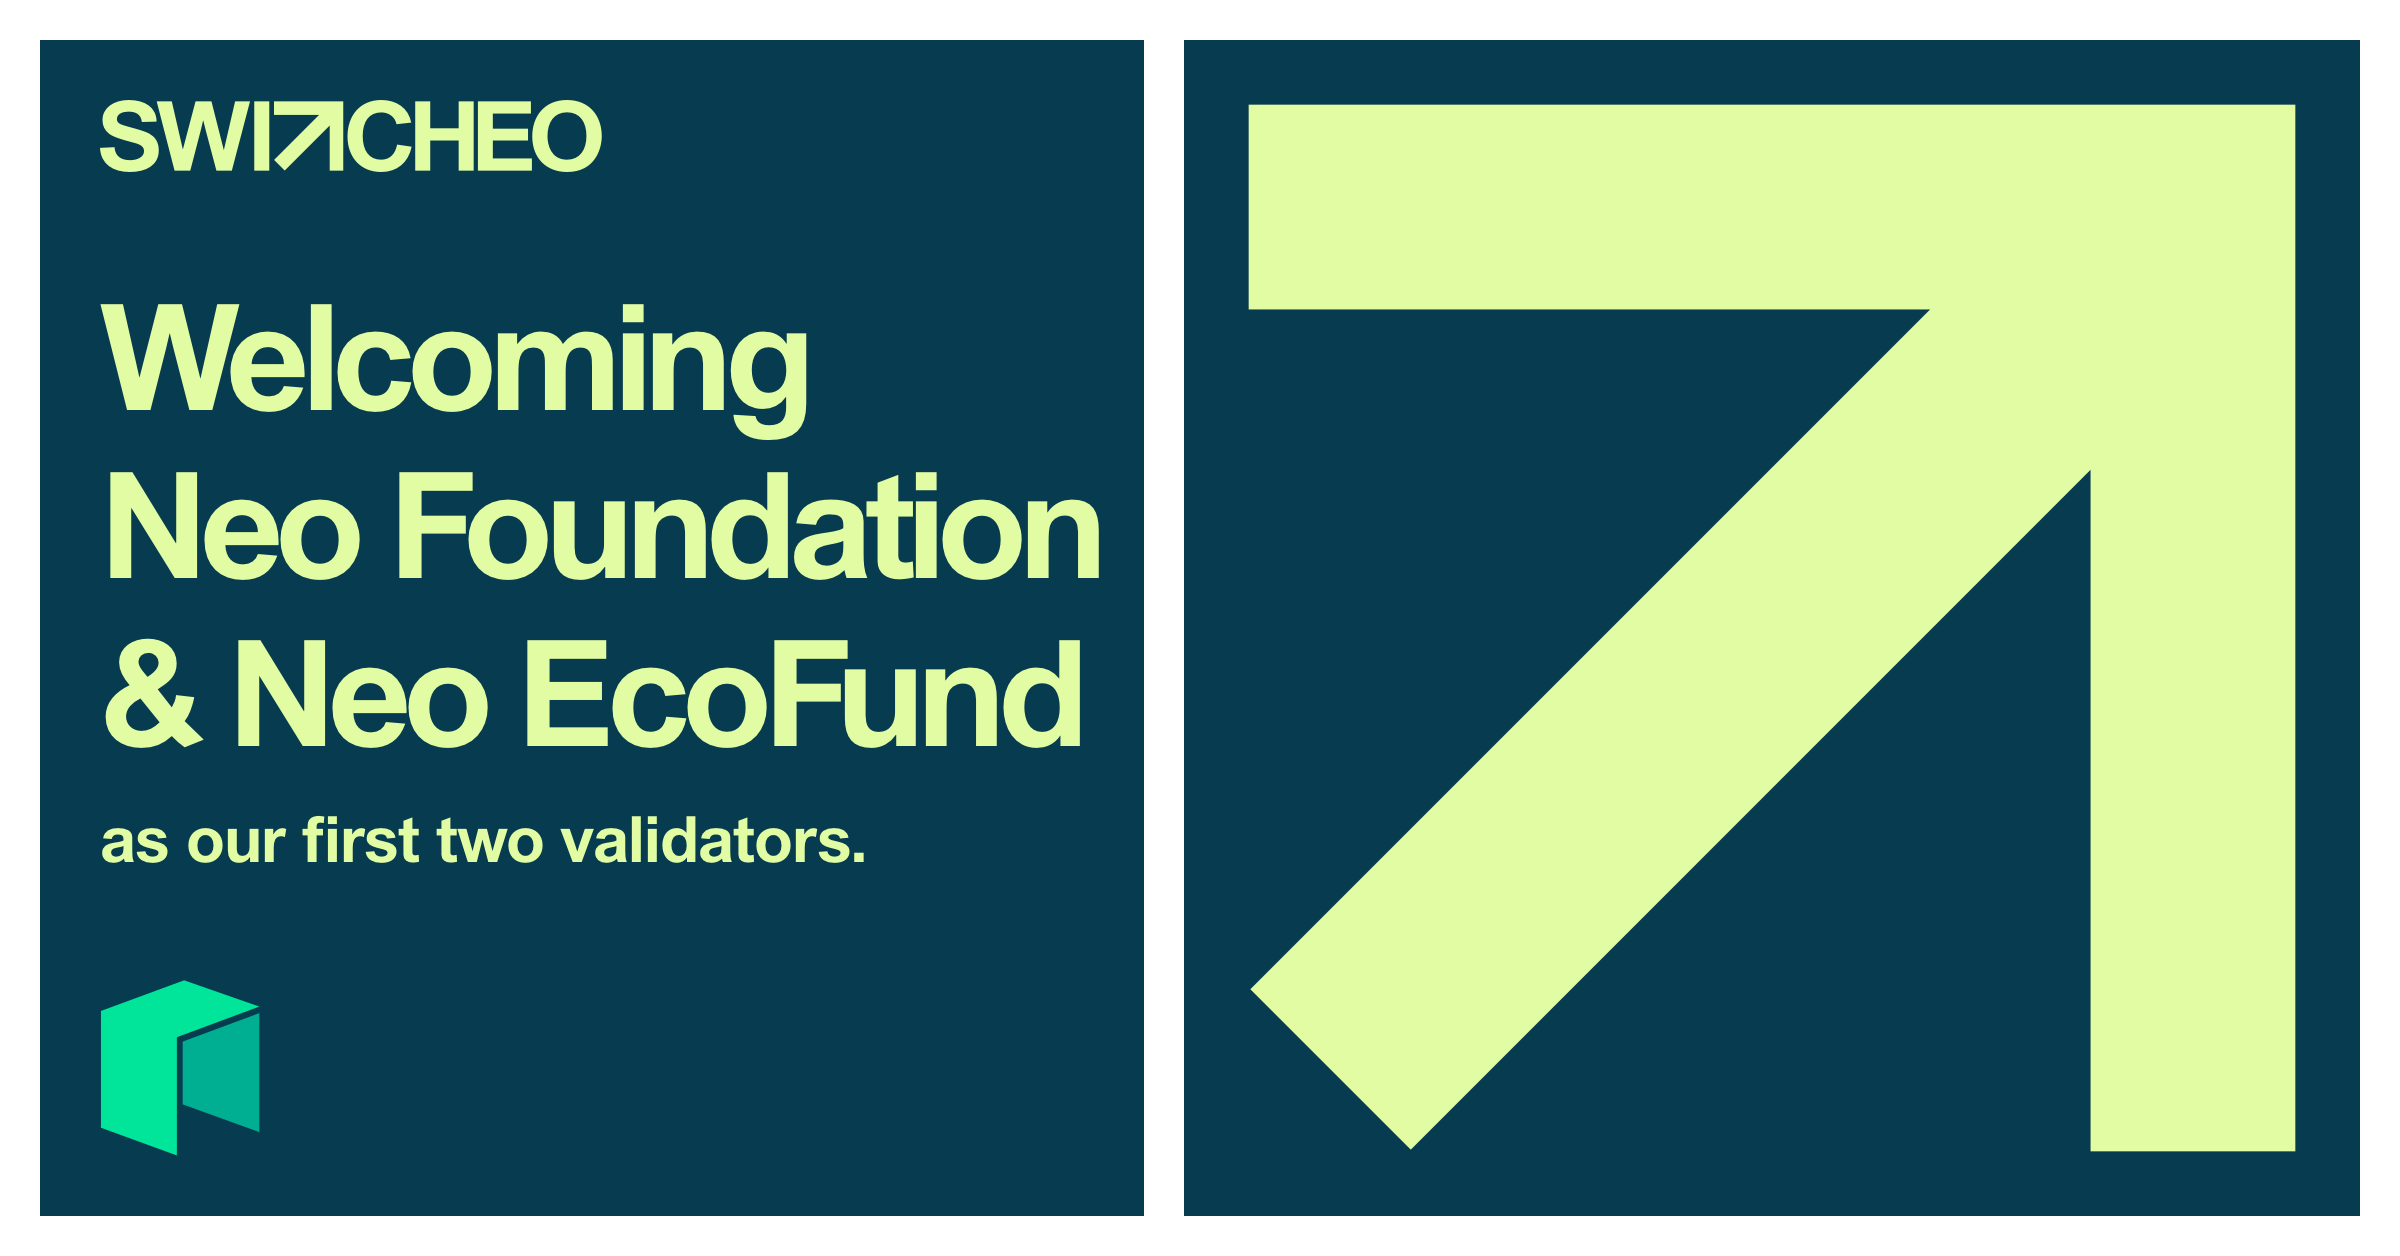 Neo Foundation & Neo EcoFund Supports Switcheo TradeHub as Validators